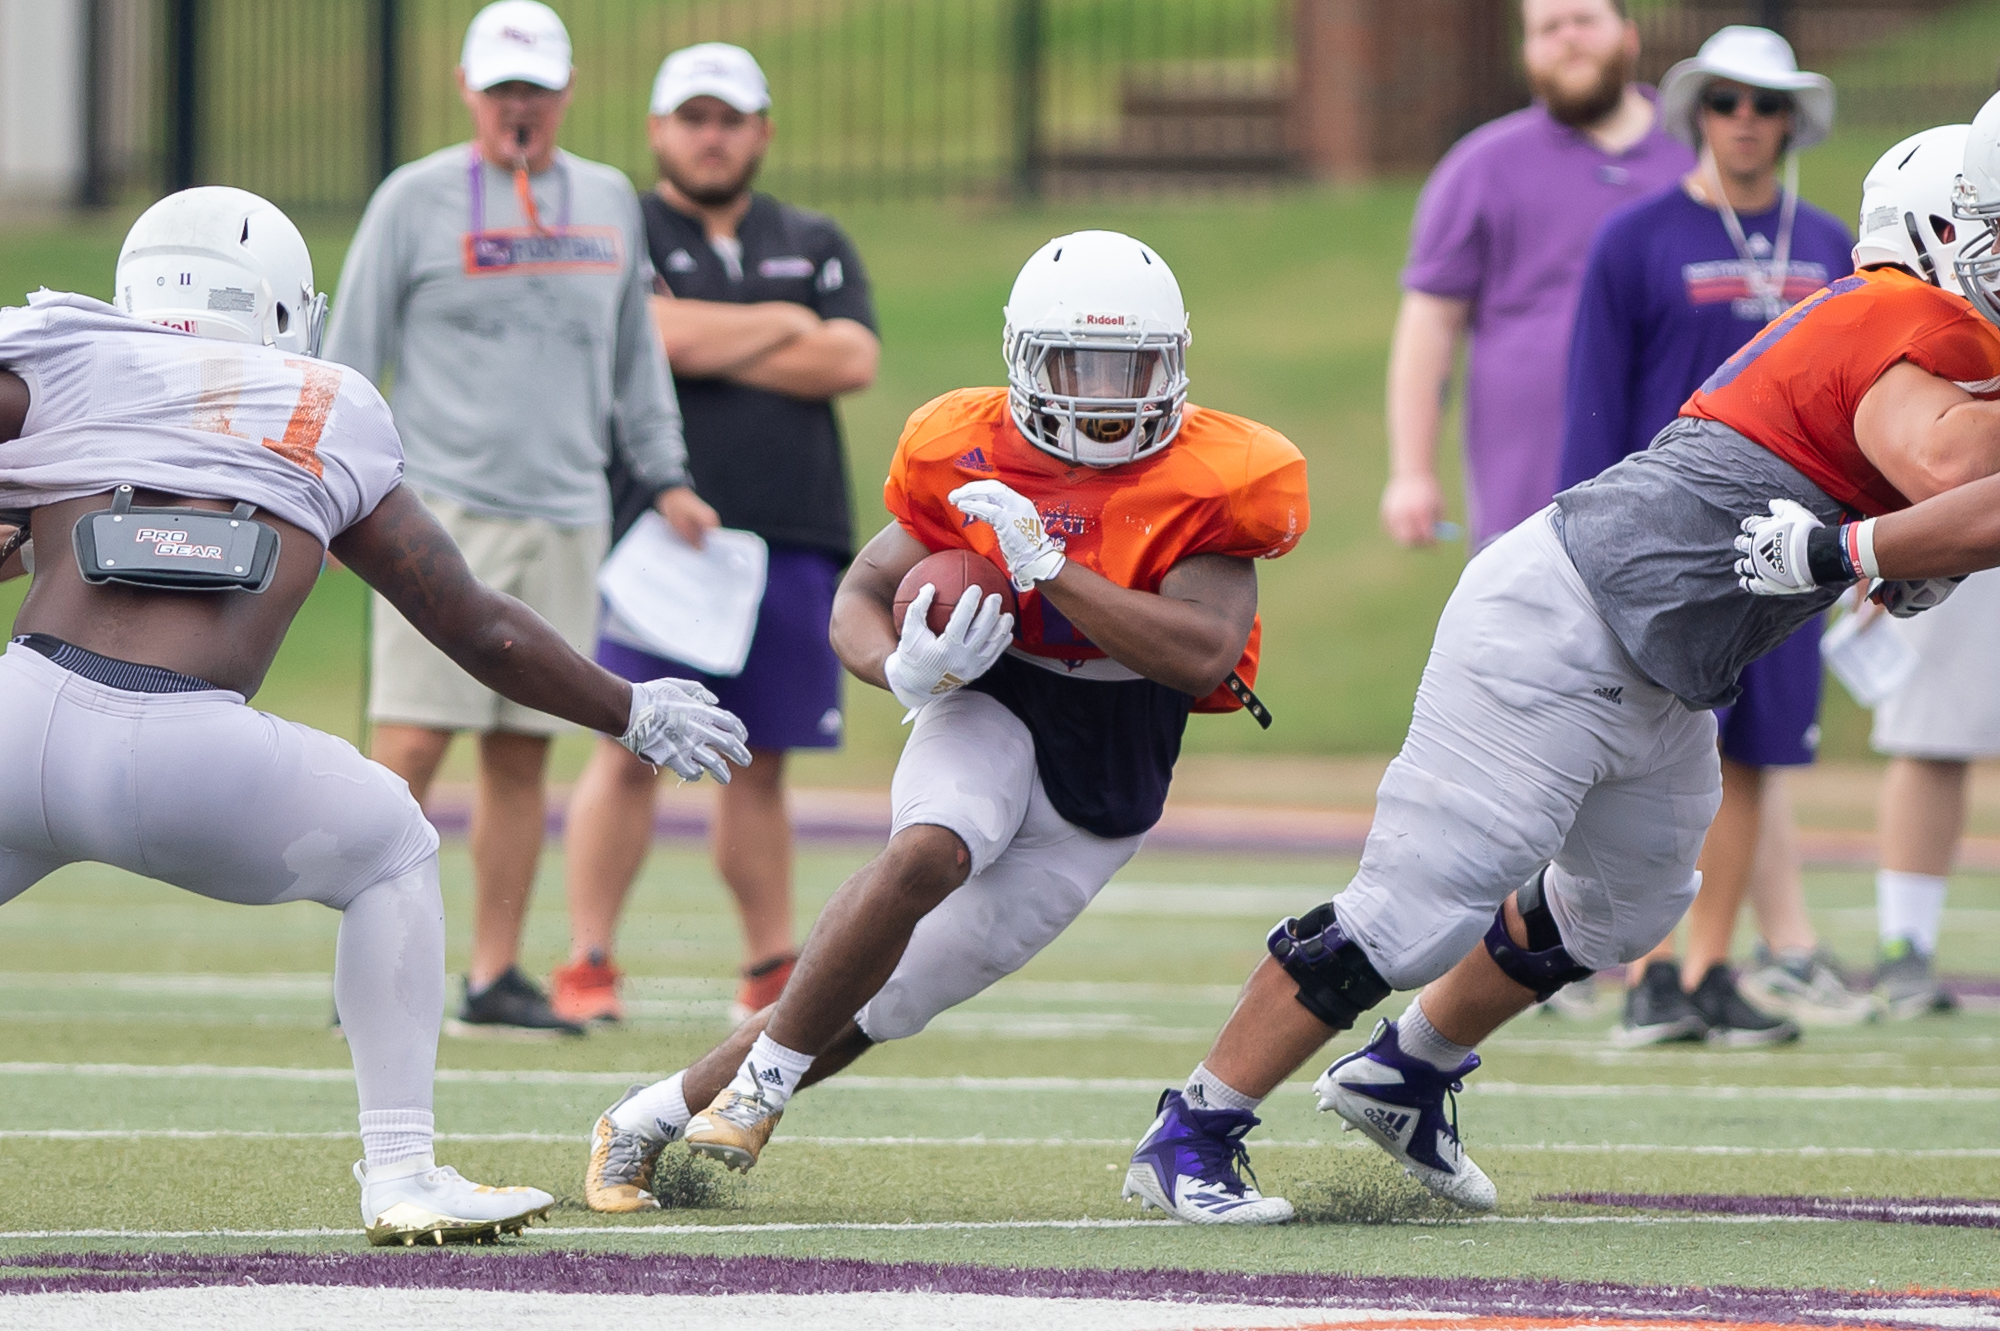 Demons eye consistency, effort in first scrimmage of fall ...